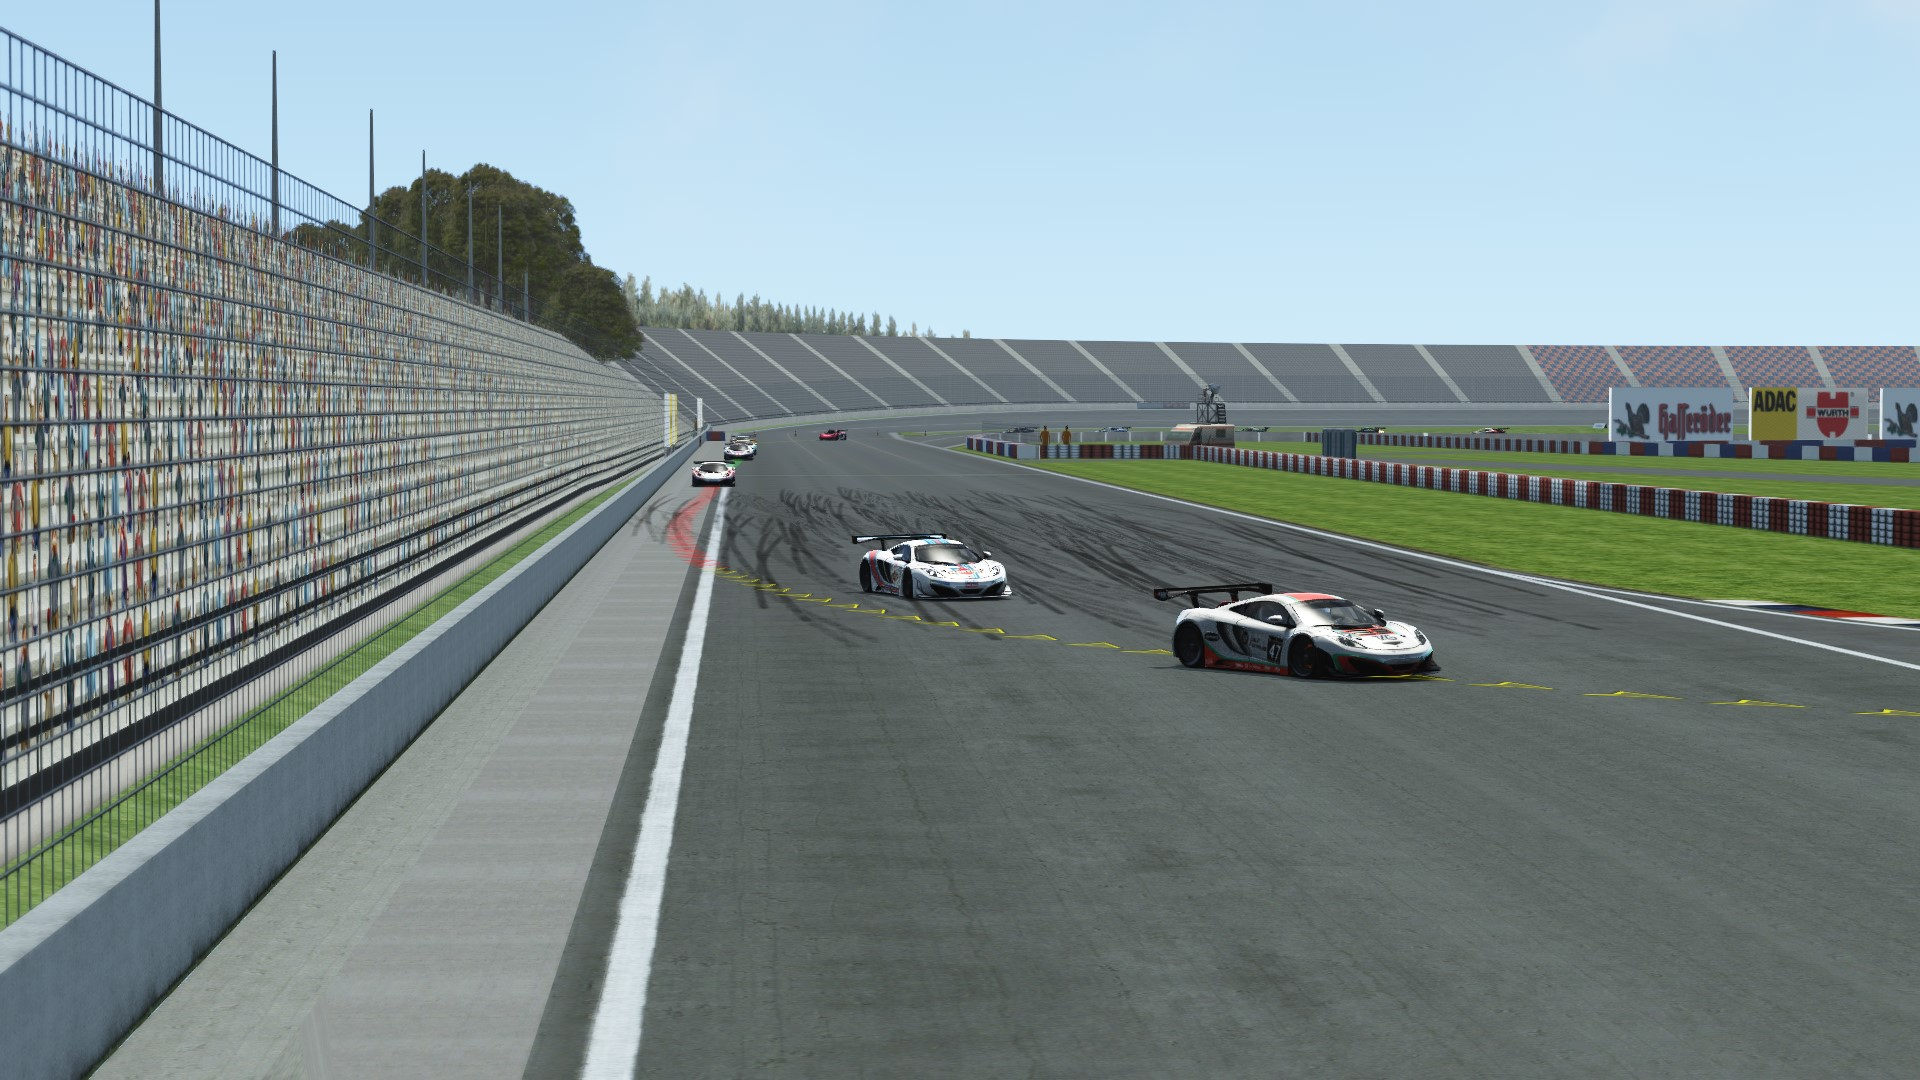 Screenshot_mclaren_mp412c_gt3_eurospeedwaygp_23-8-115-20-39-7.jpg